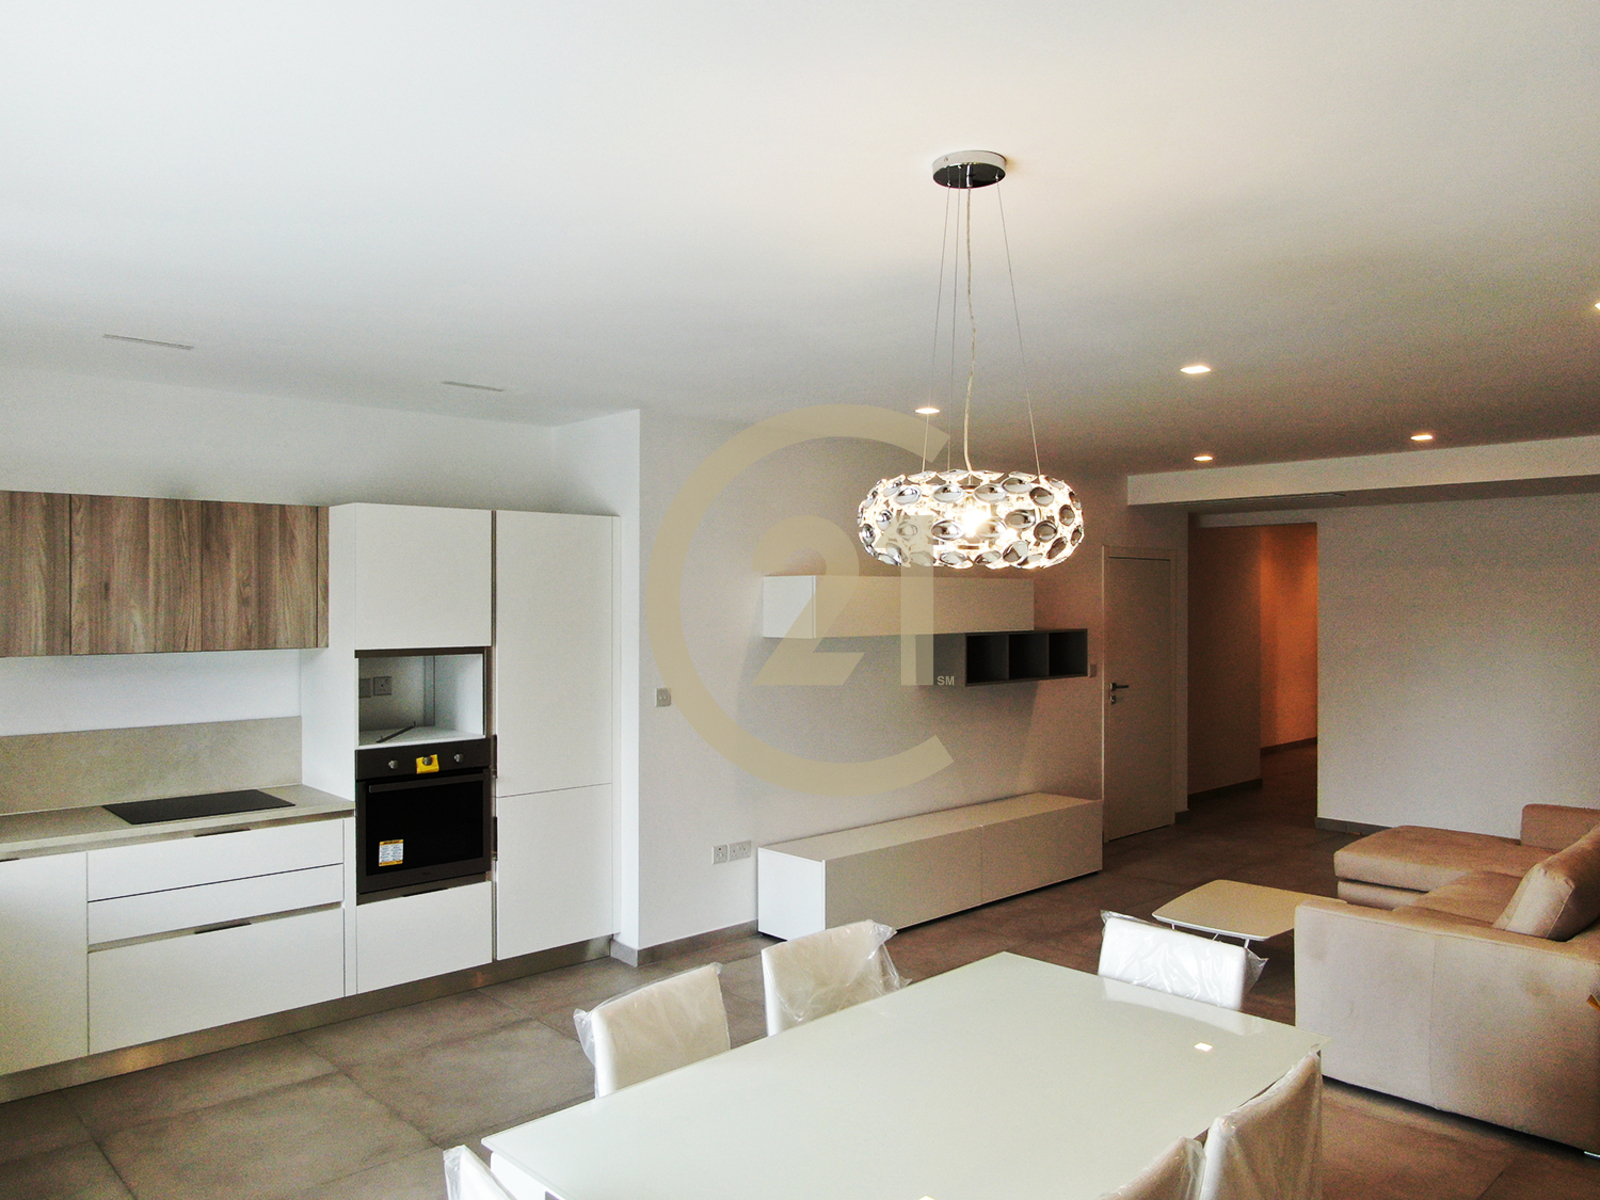 2 Bedroom Penthouse for Sale in Balzan